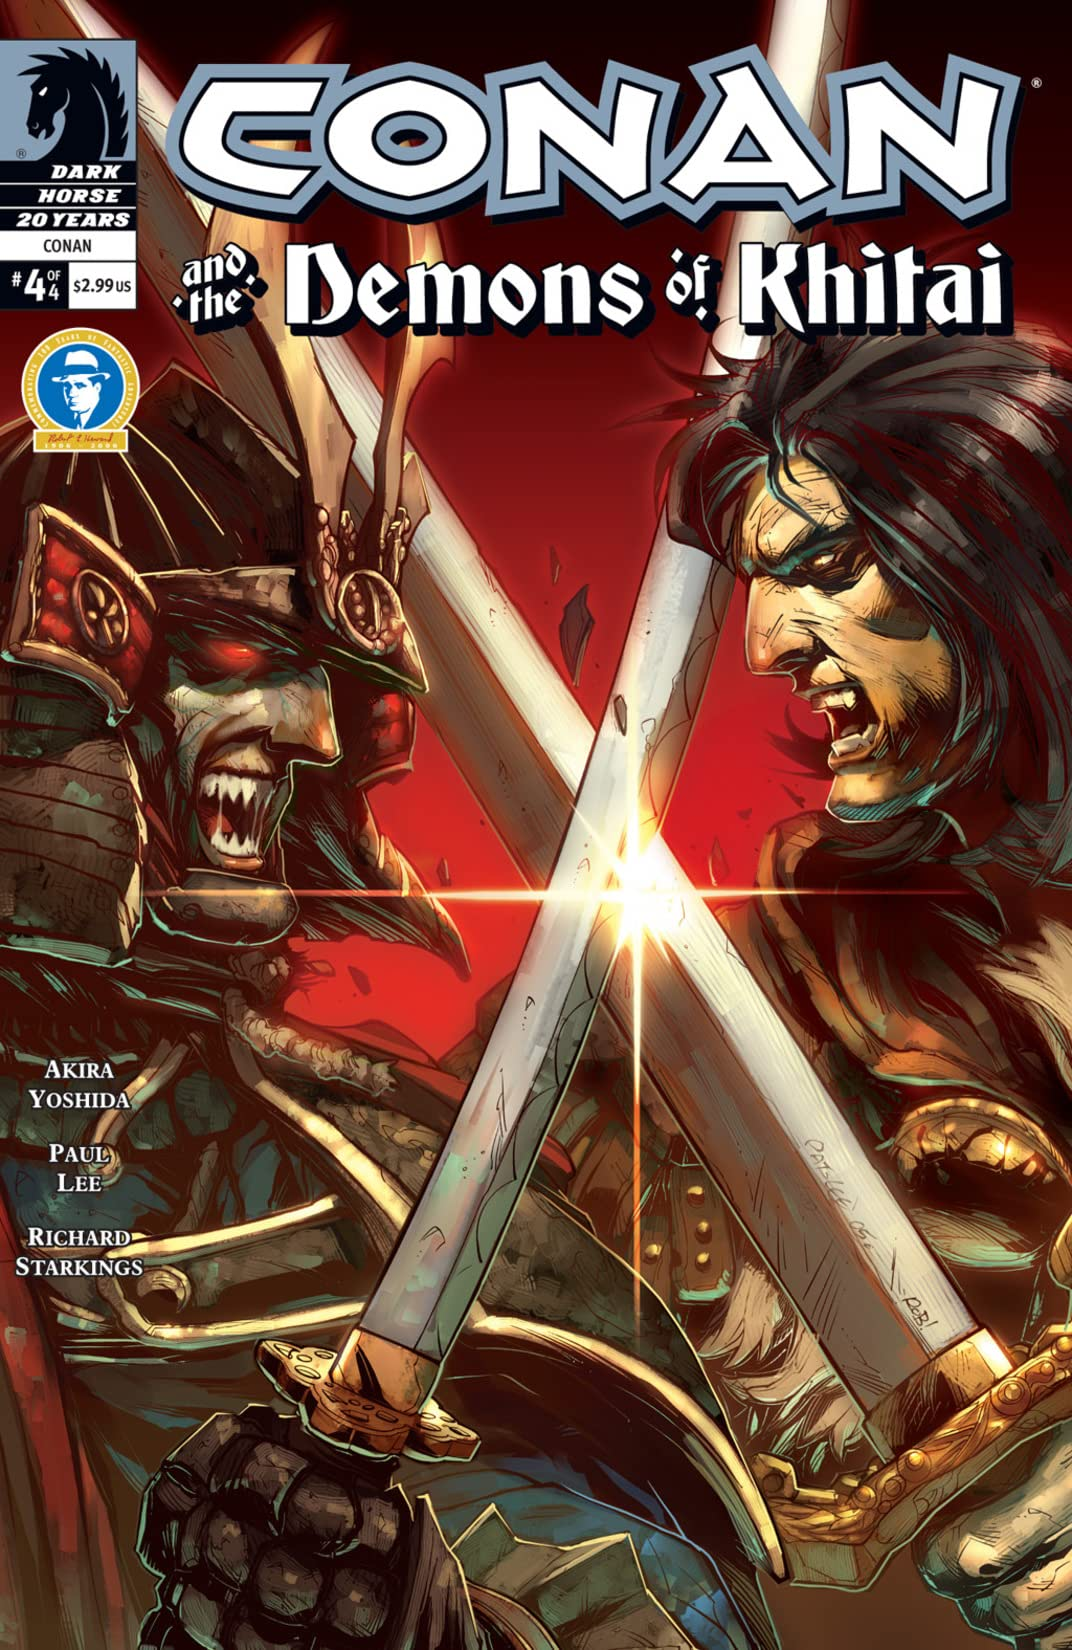 Conan and the Demons of Khitai #4